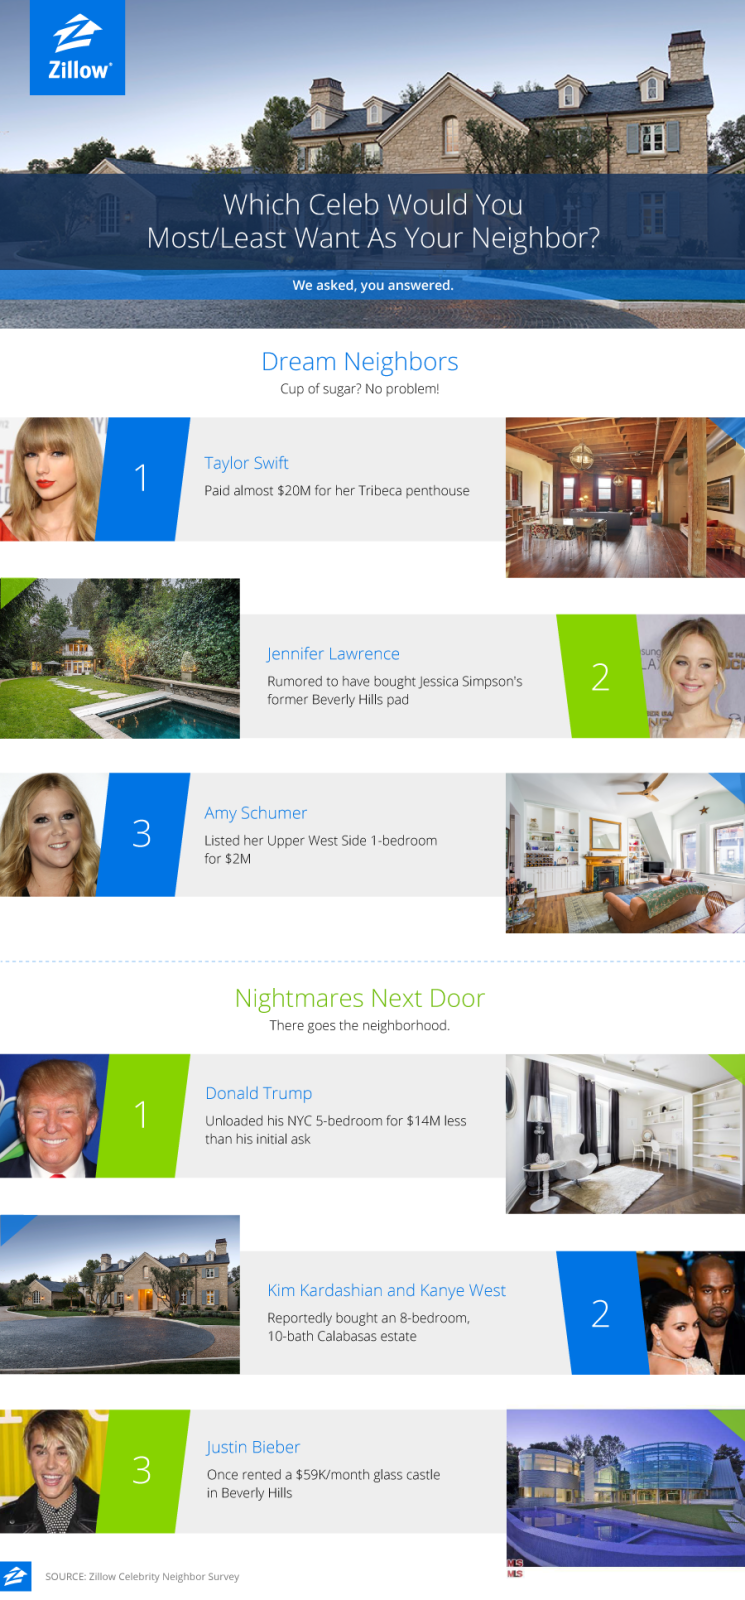 Taylor swift named most desirable neighbor for 2016 for Zillow 3